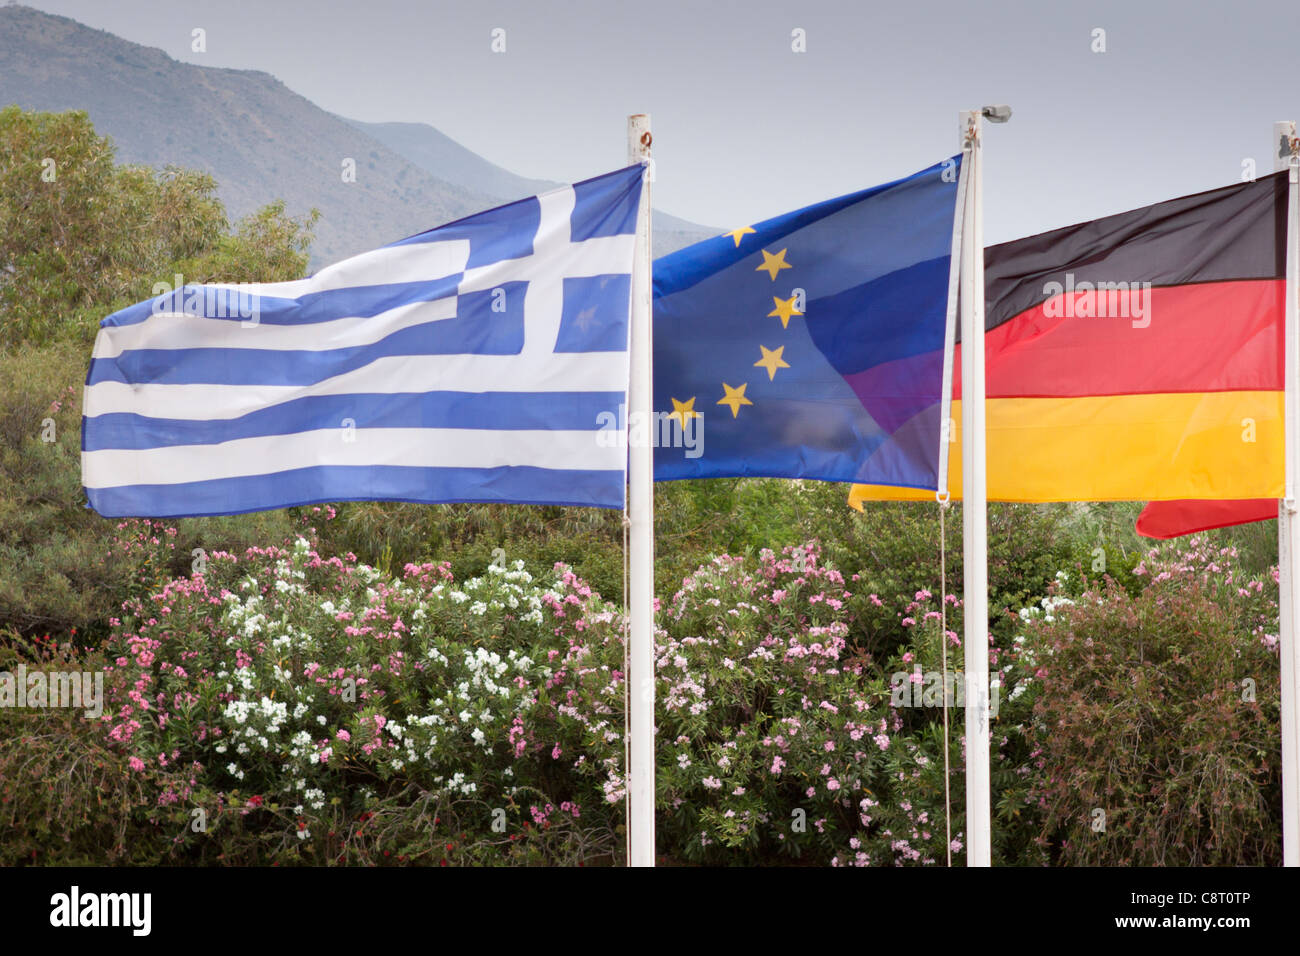 Flags of Greece, Germany and the European Union fly together - Stock Image